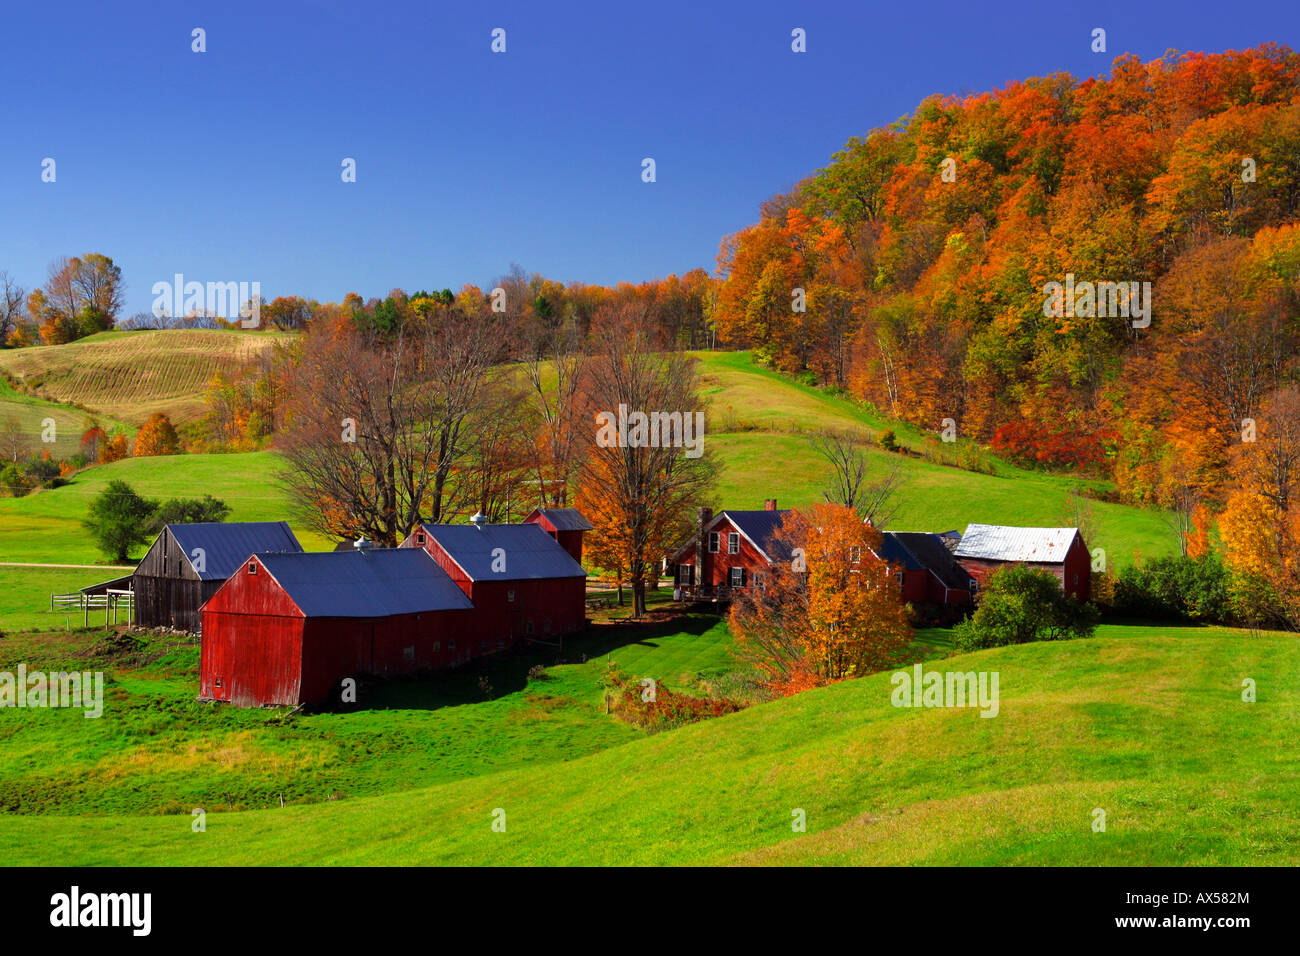 Autumn And Fall Foliage At The Jenne Farm In Reading Vermont Stock Photo Alamy